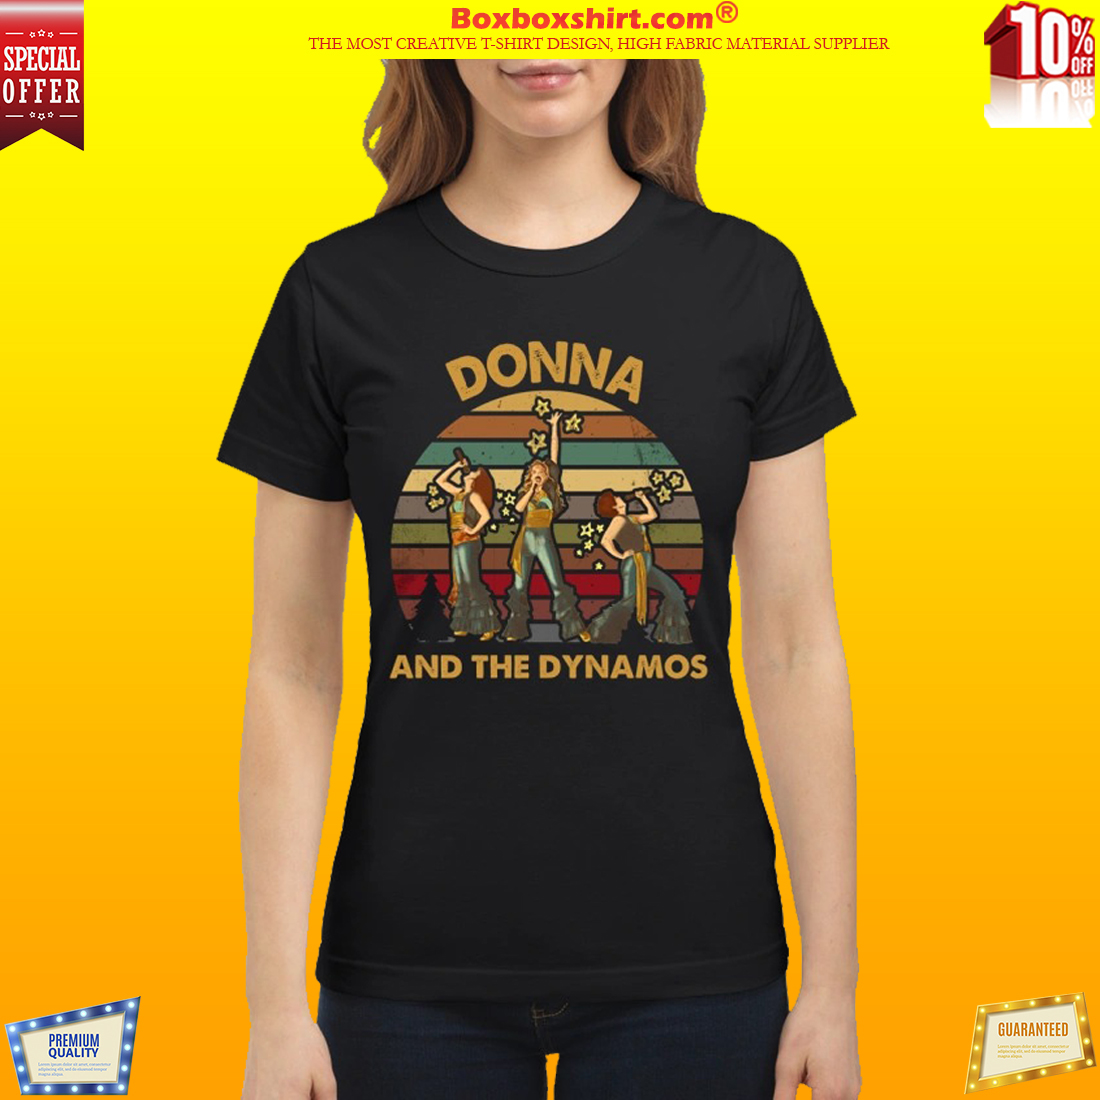 Donna and the dynamos costume shirt